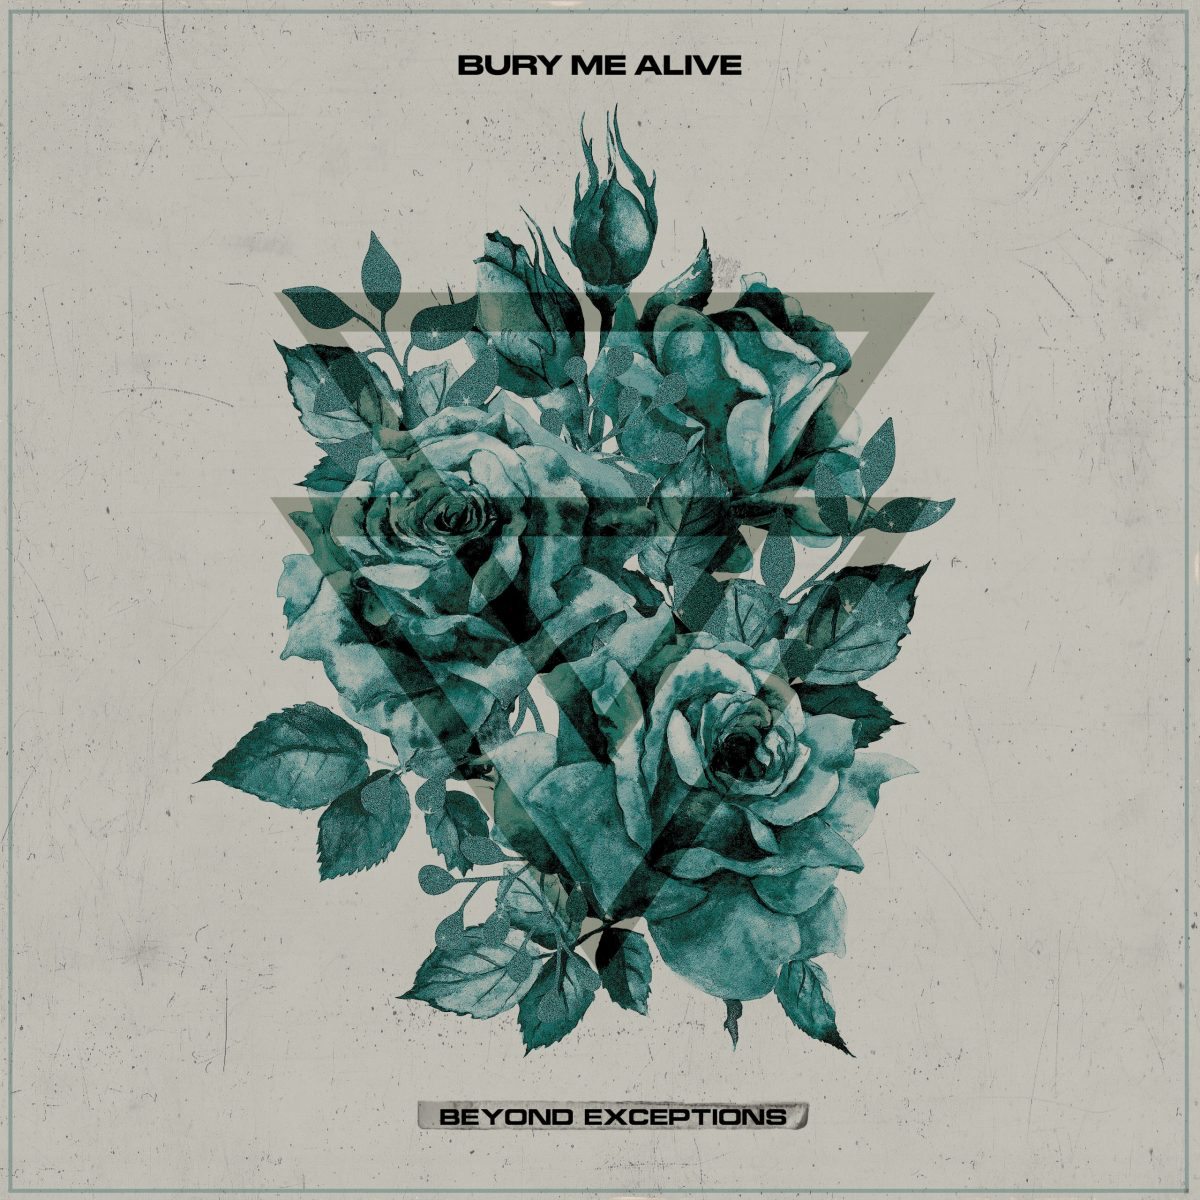 bury-me-alive-beyond-exceptions-album-review